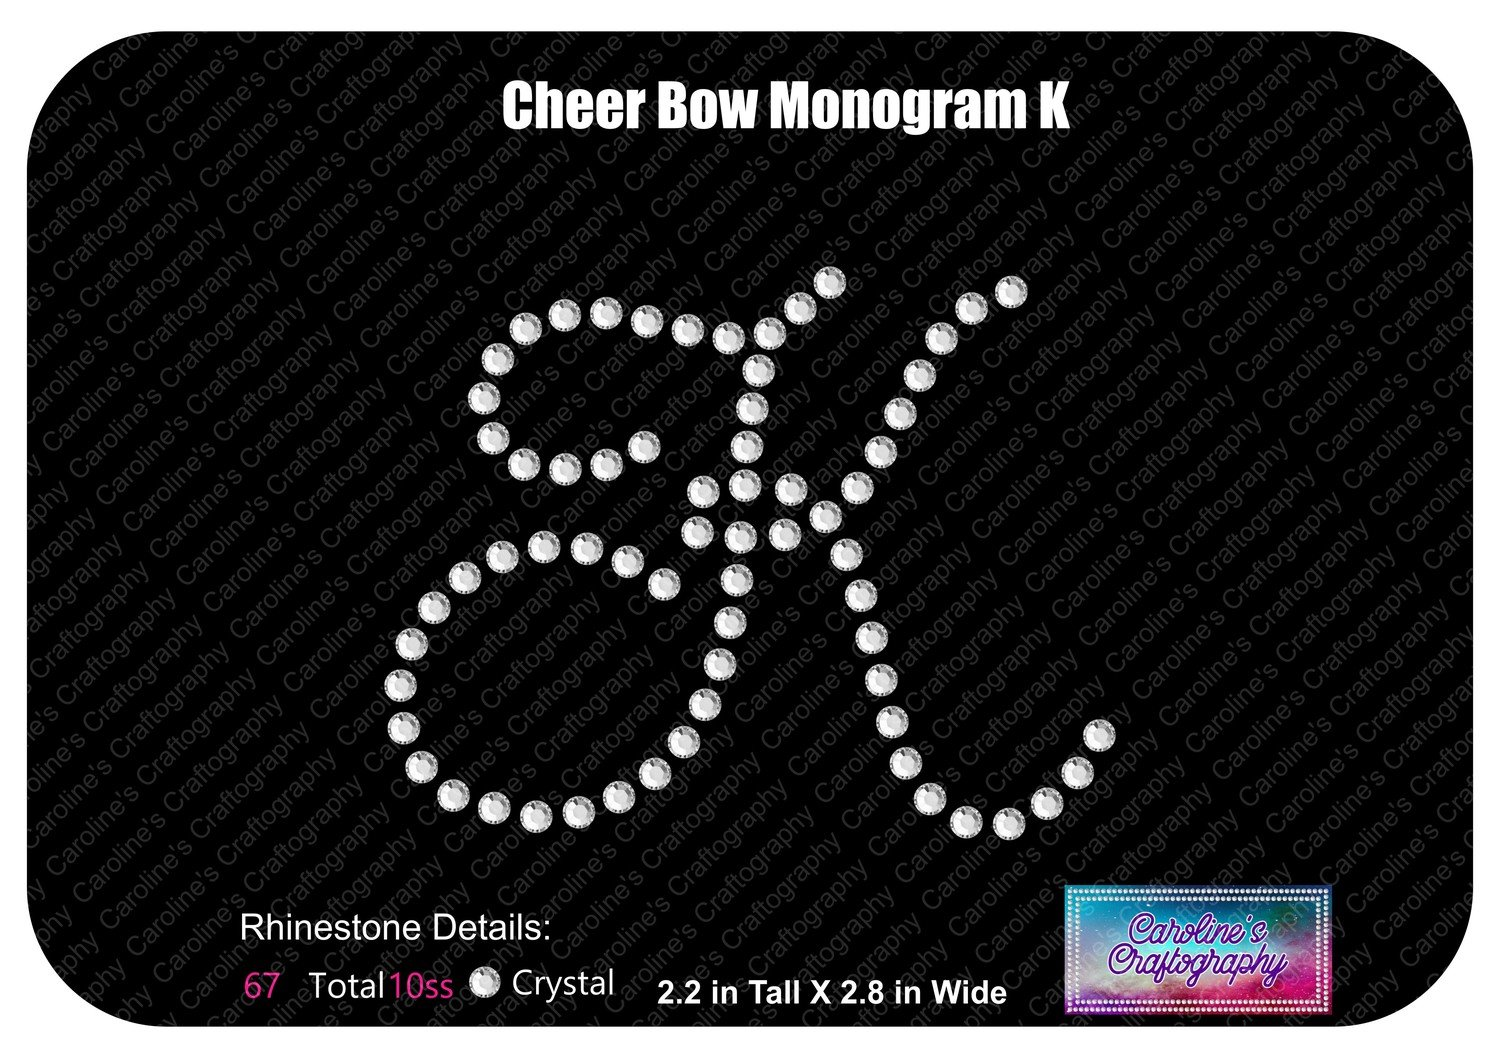 K Monogram Cheer Add-on Stone